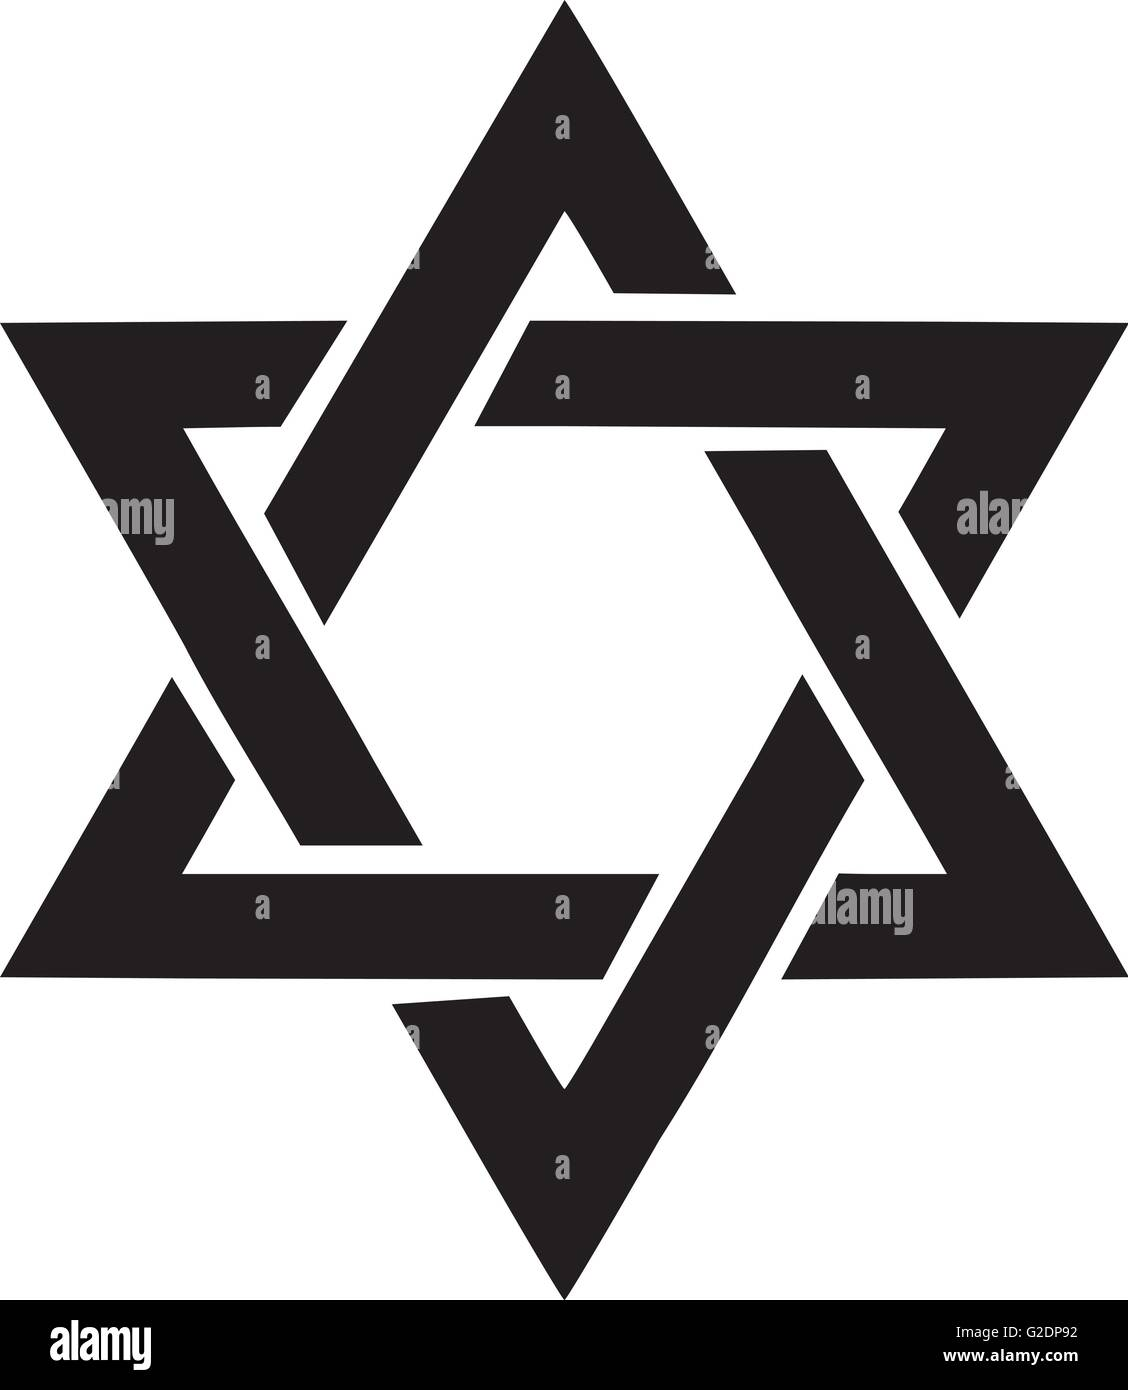 Star of david - Stock Vector